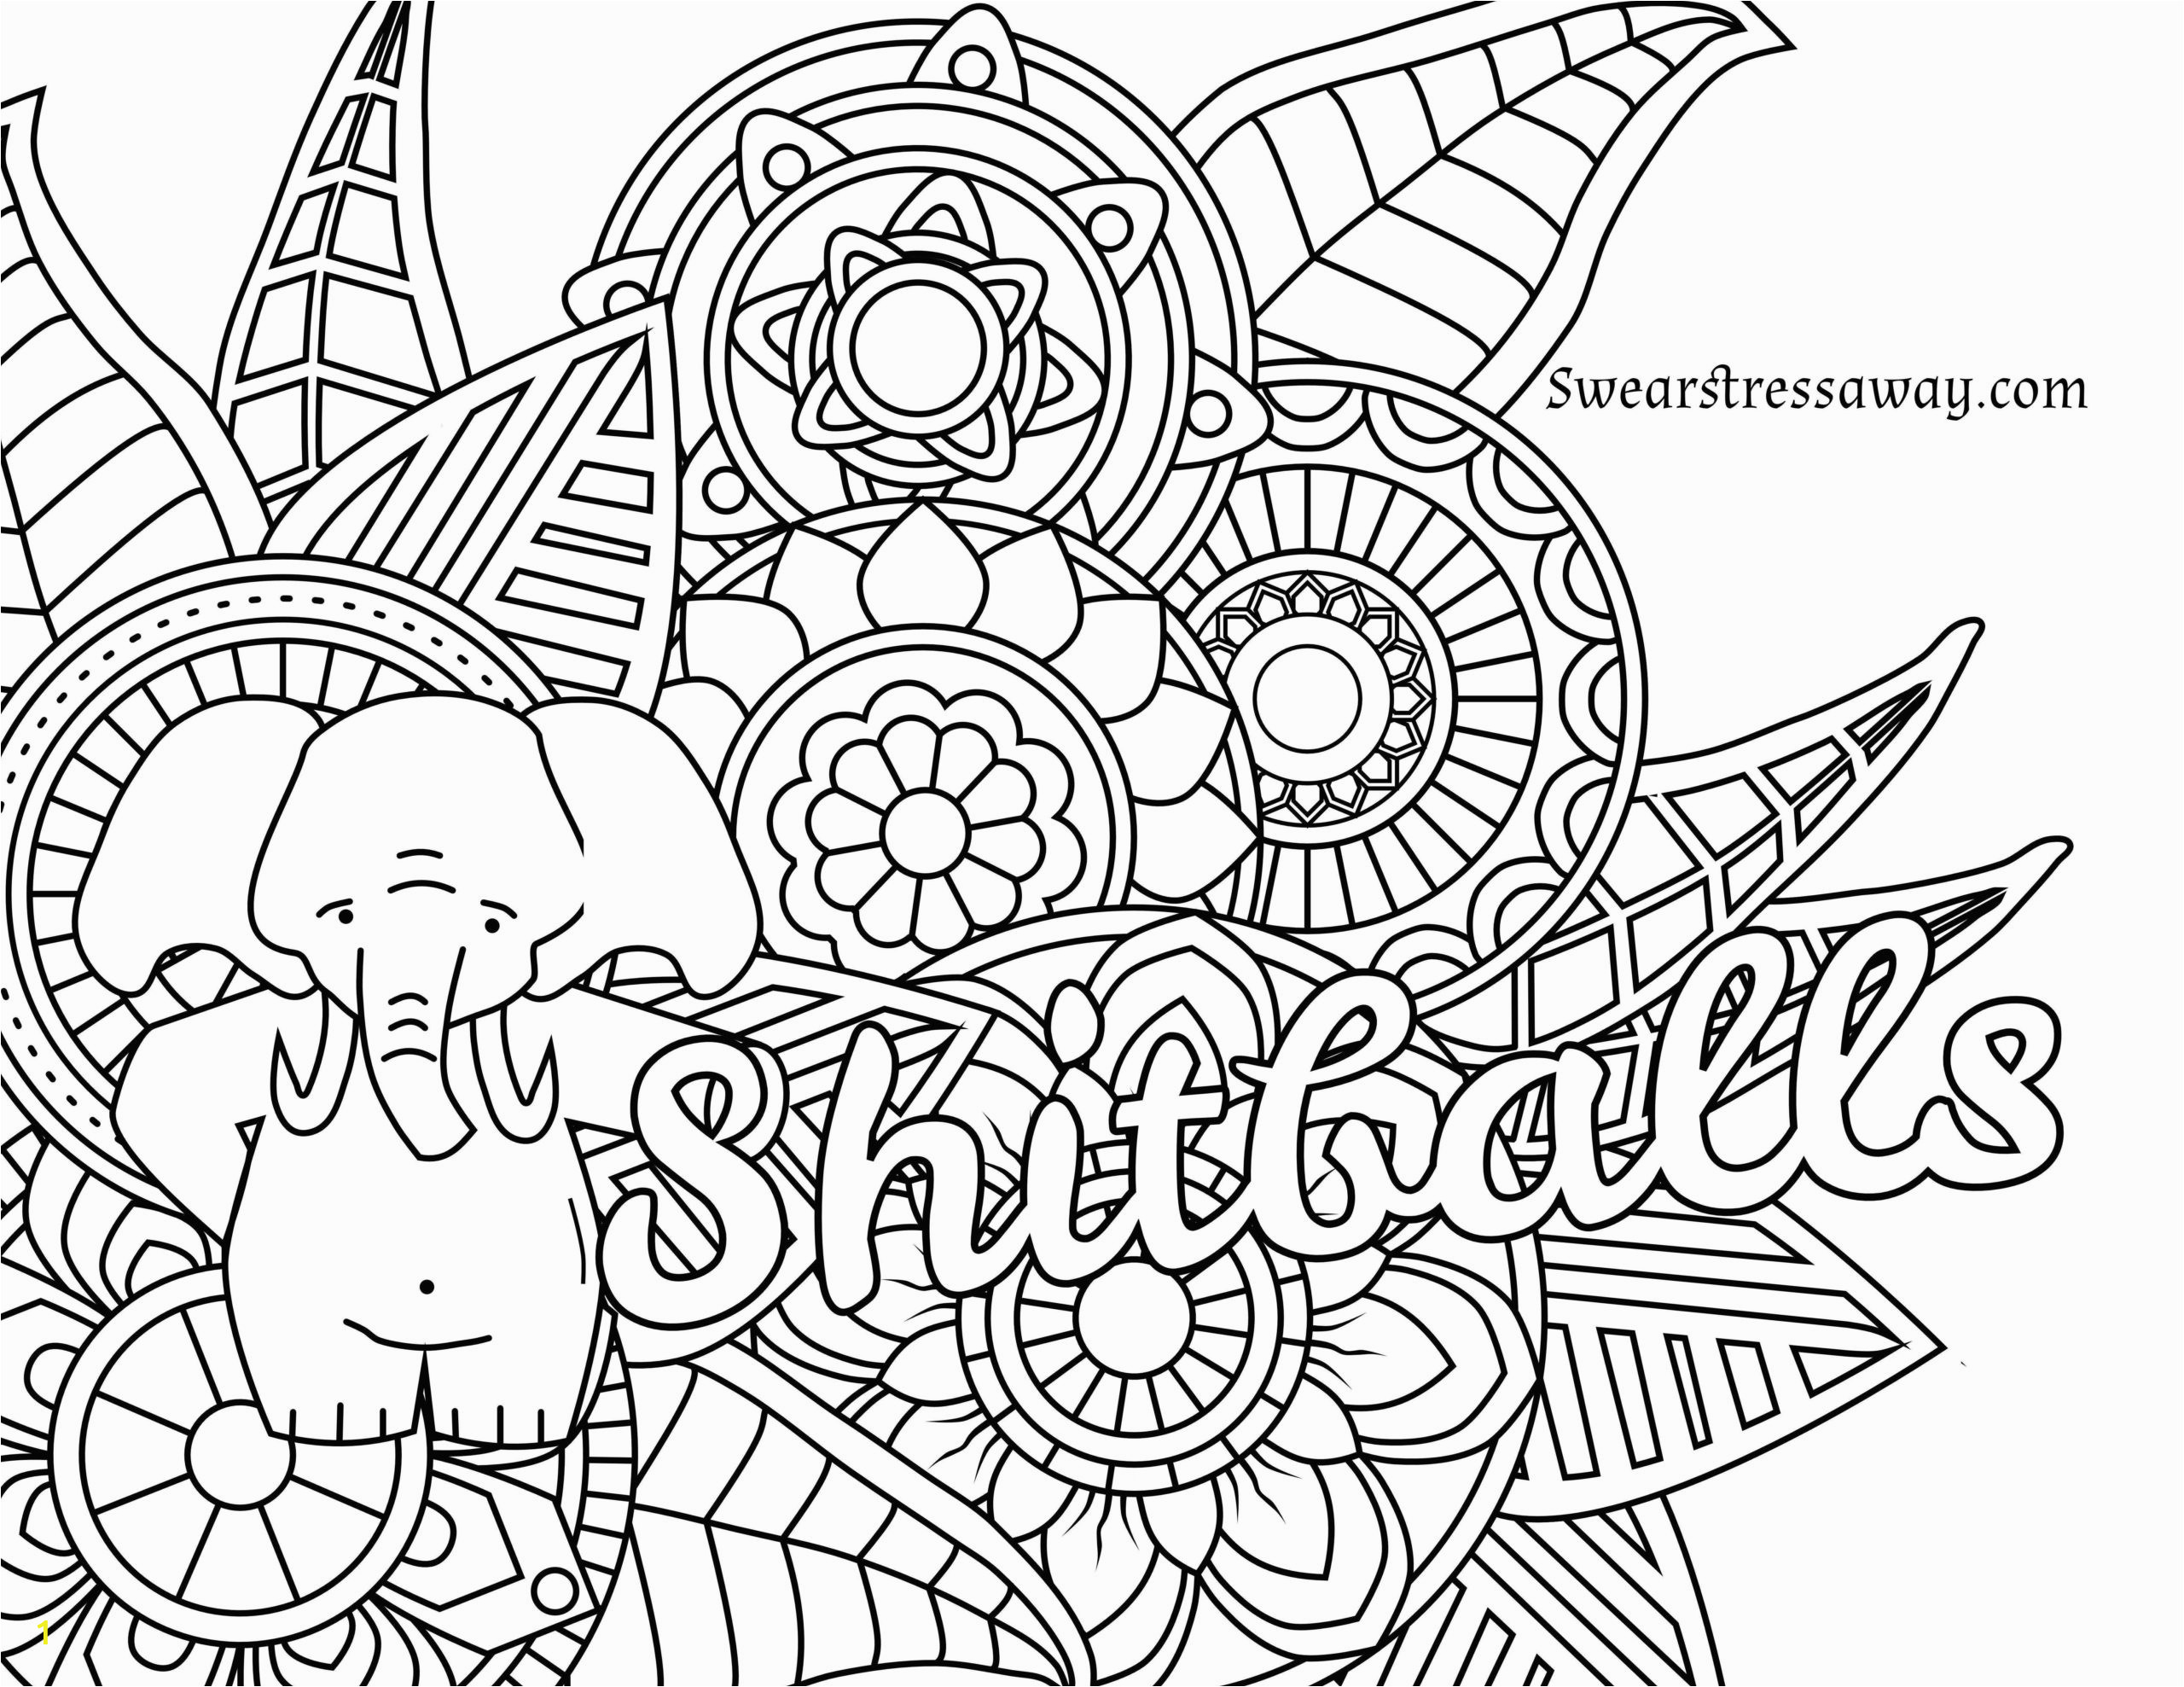 Swear Word Adult Coloring Book Pages 58 Most Awesome Curse Word Coloring Book Lovely Swearresh